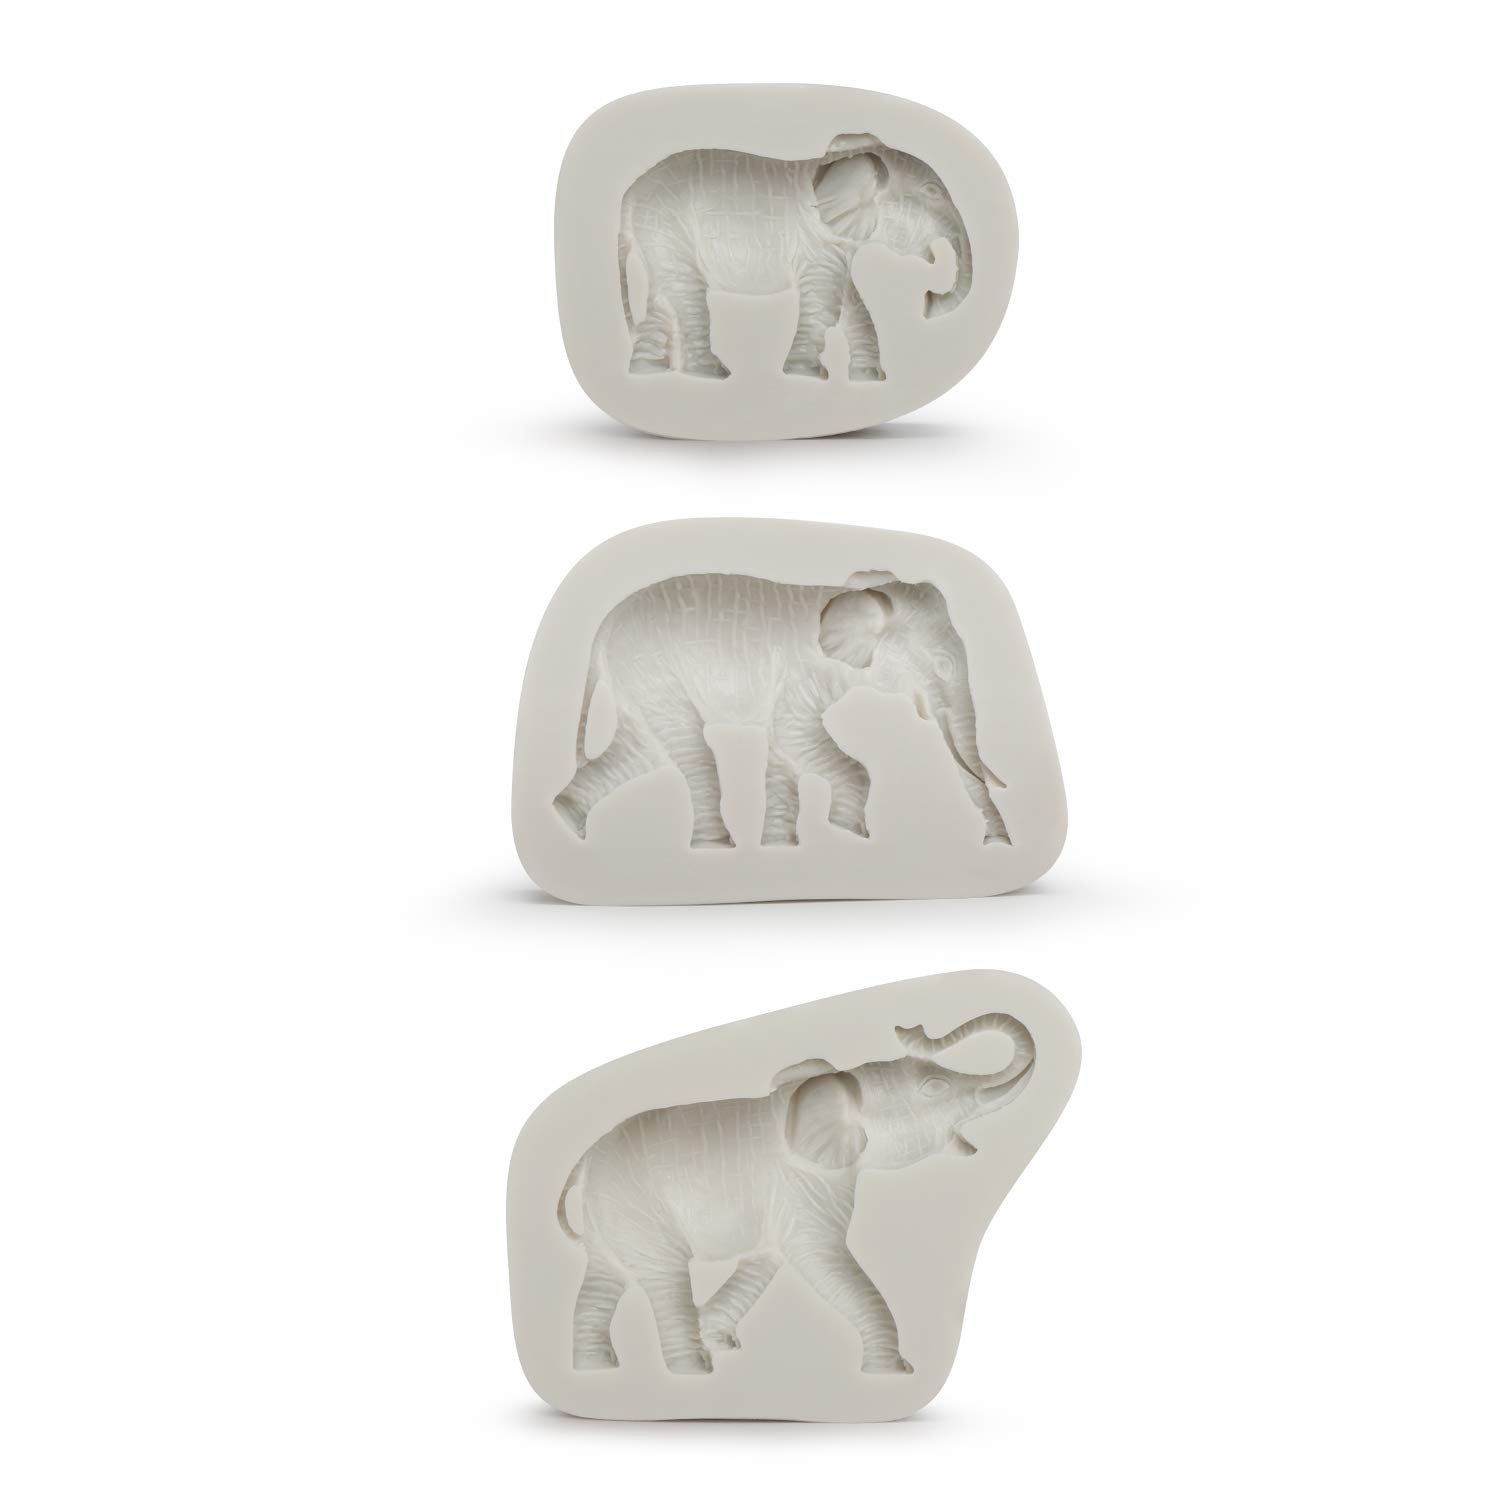 Elephant Chocolate Mold, Beasea Elephant Silicone Cupcake Mold Candy Mold for Party Holiday Cake, Soap, Ice Cube, Gummy, Cookie, Biscuit Decoration